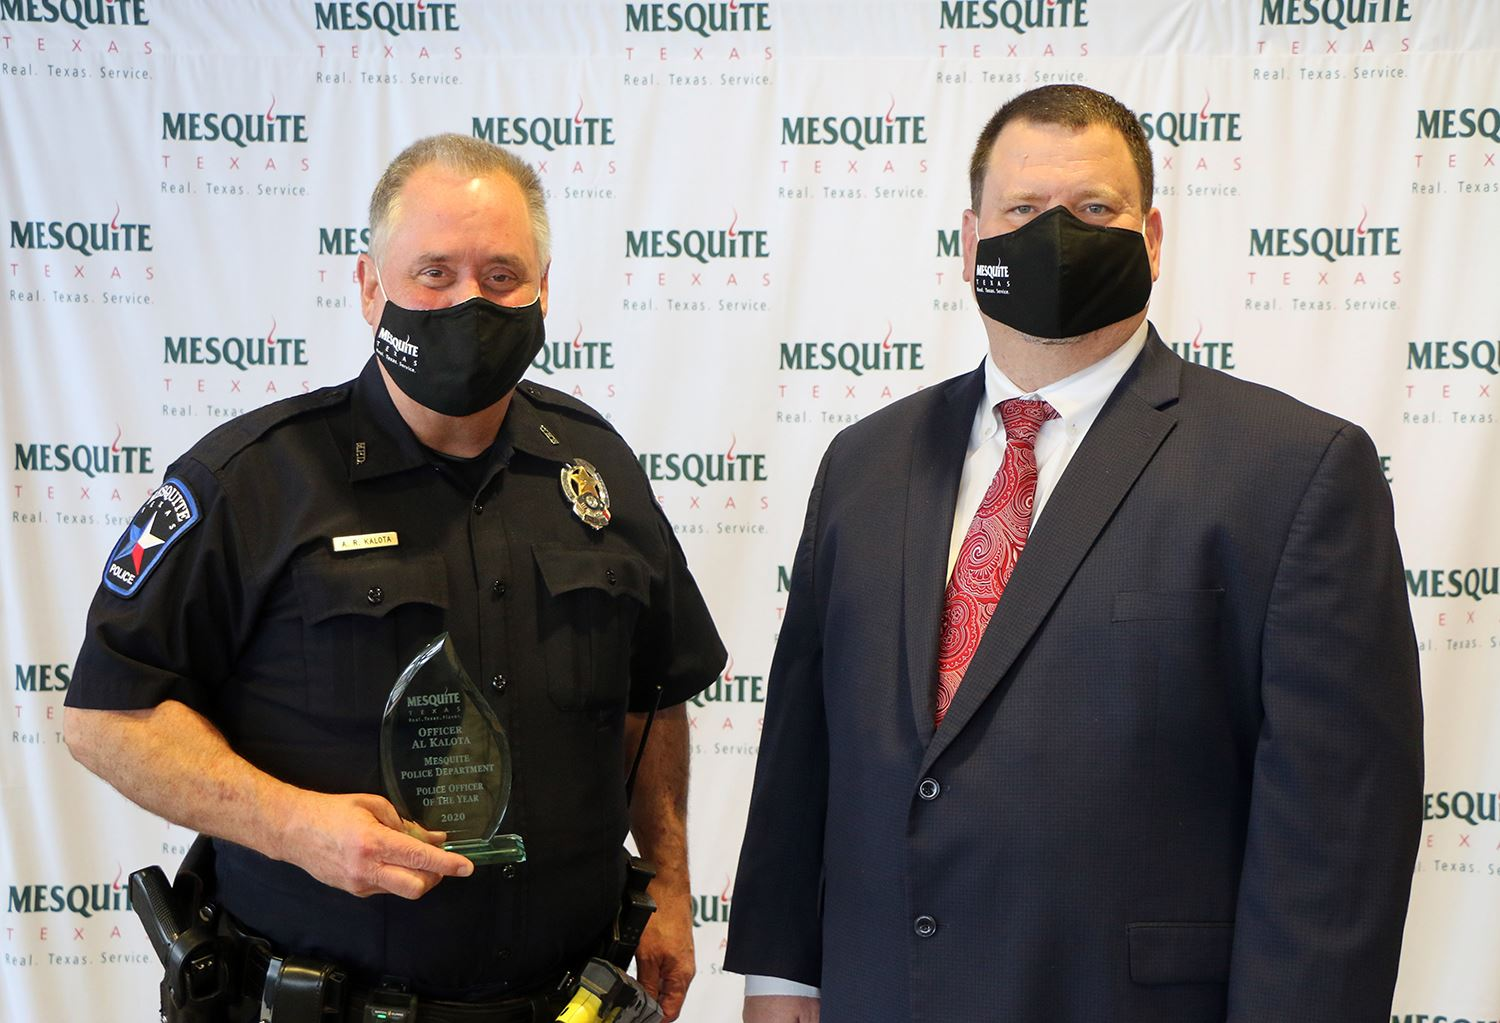 2020 Police Officer of the Year - Police Officer Al Kalota with Mayor Bruce Archer - Mesquite TX